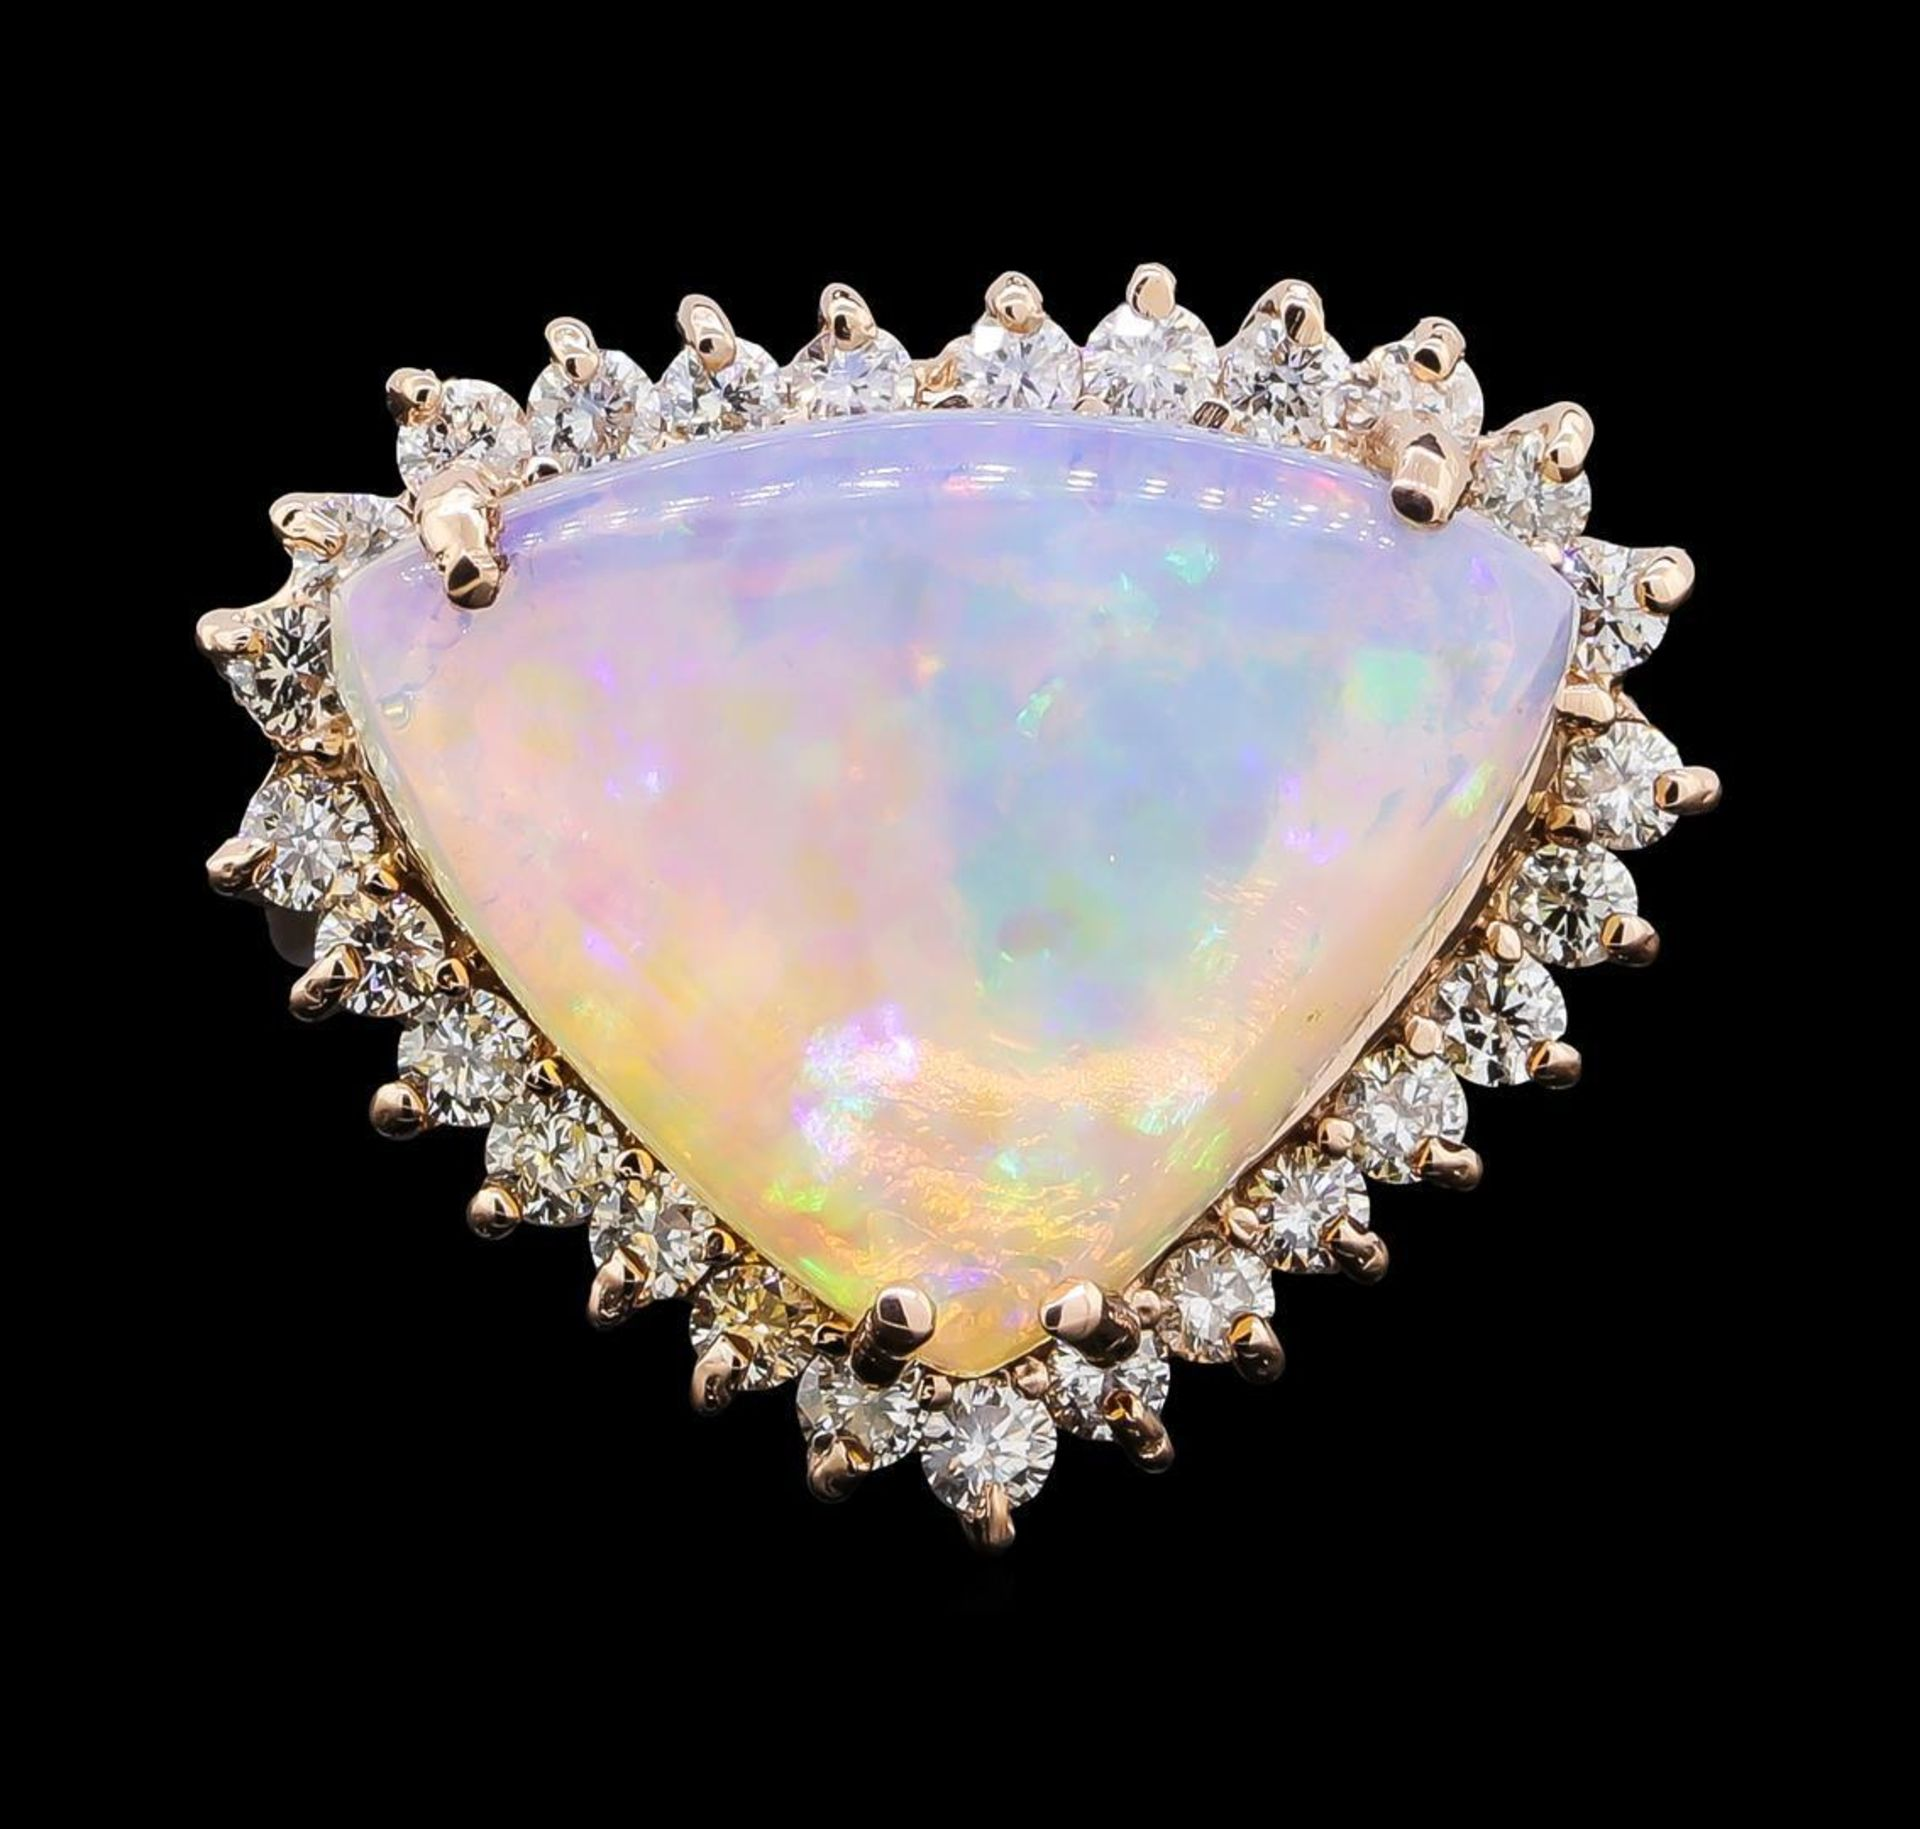 7.51 ctw Opal and Diamond Ring - 14KT Rose Gold - Image 2 of 5